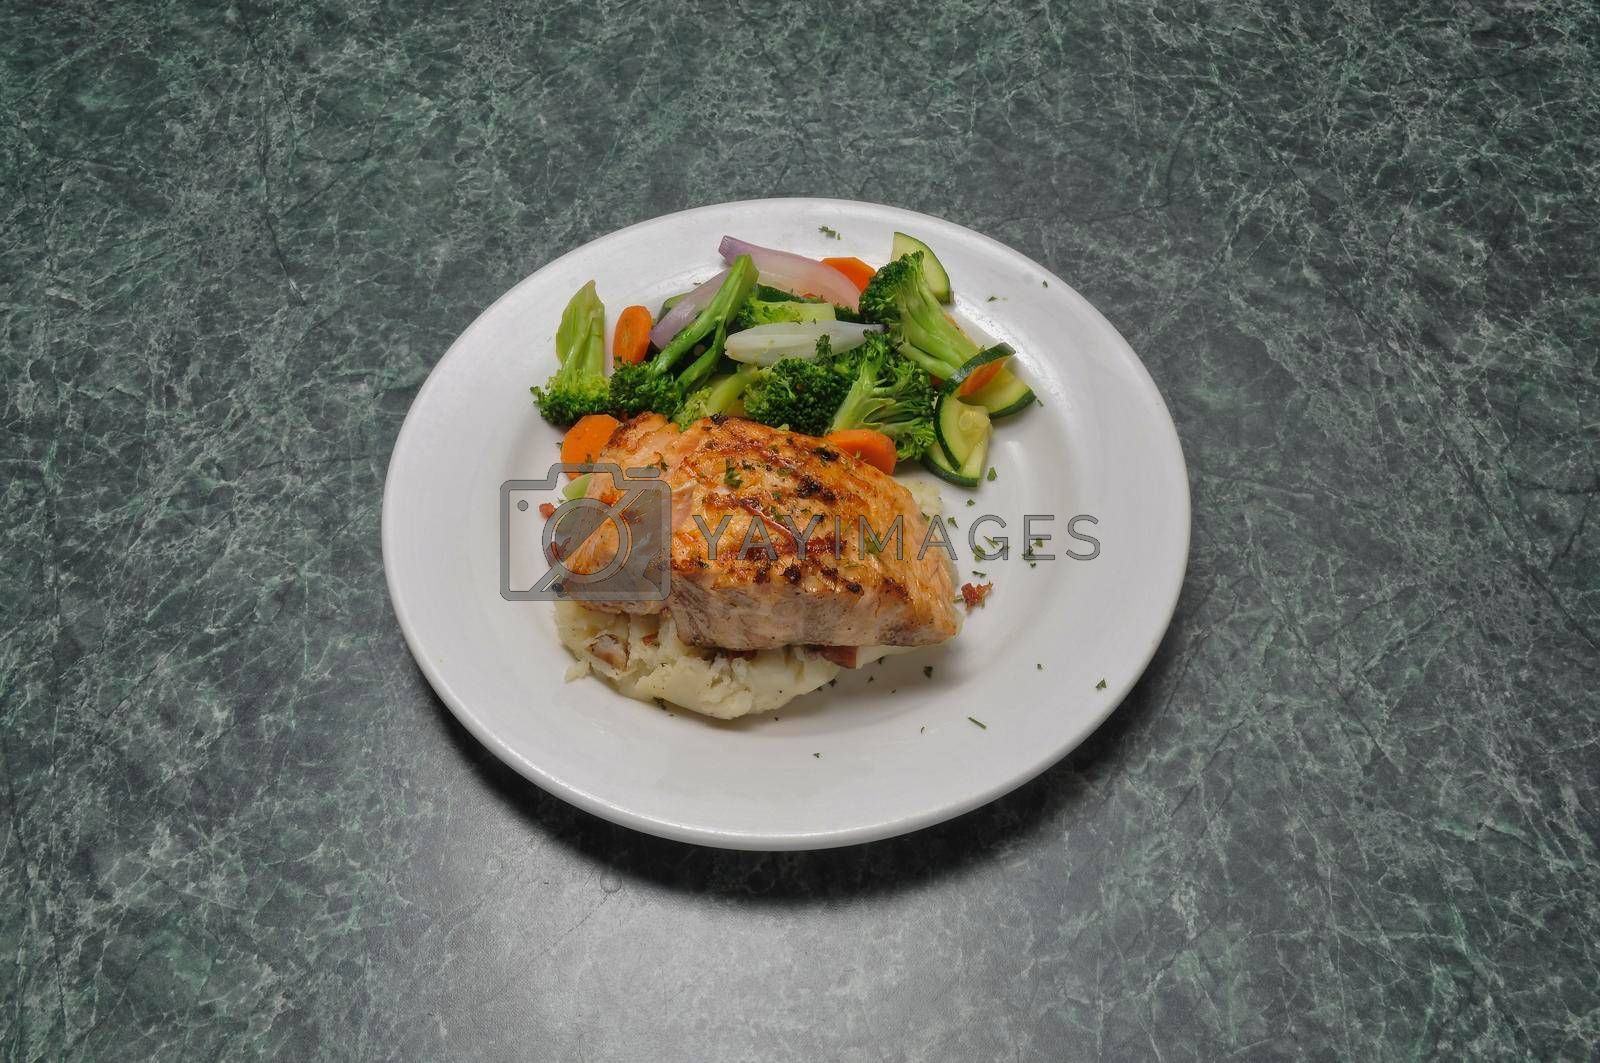 Delicious American cuisine known as fresh salmon